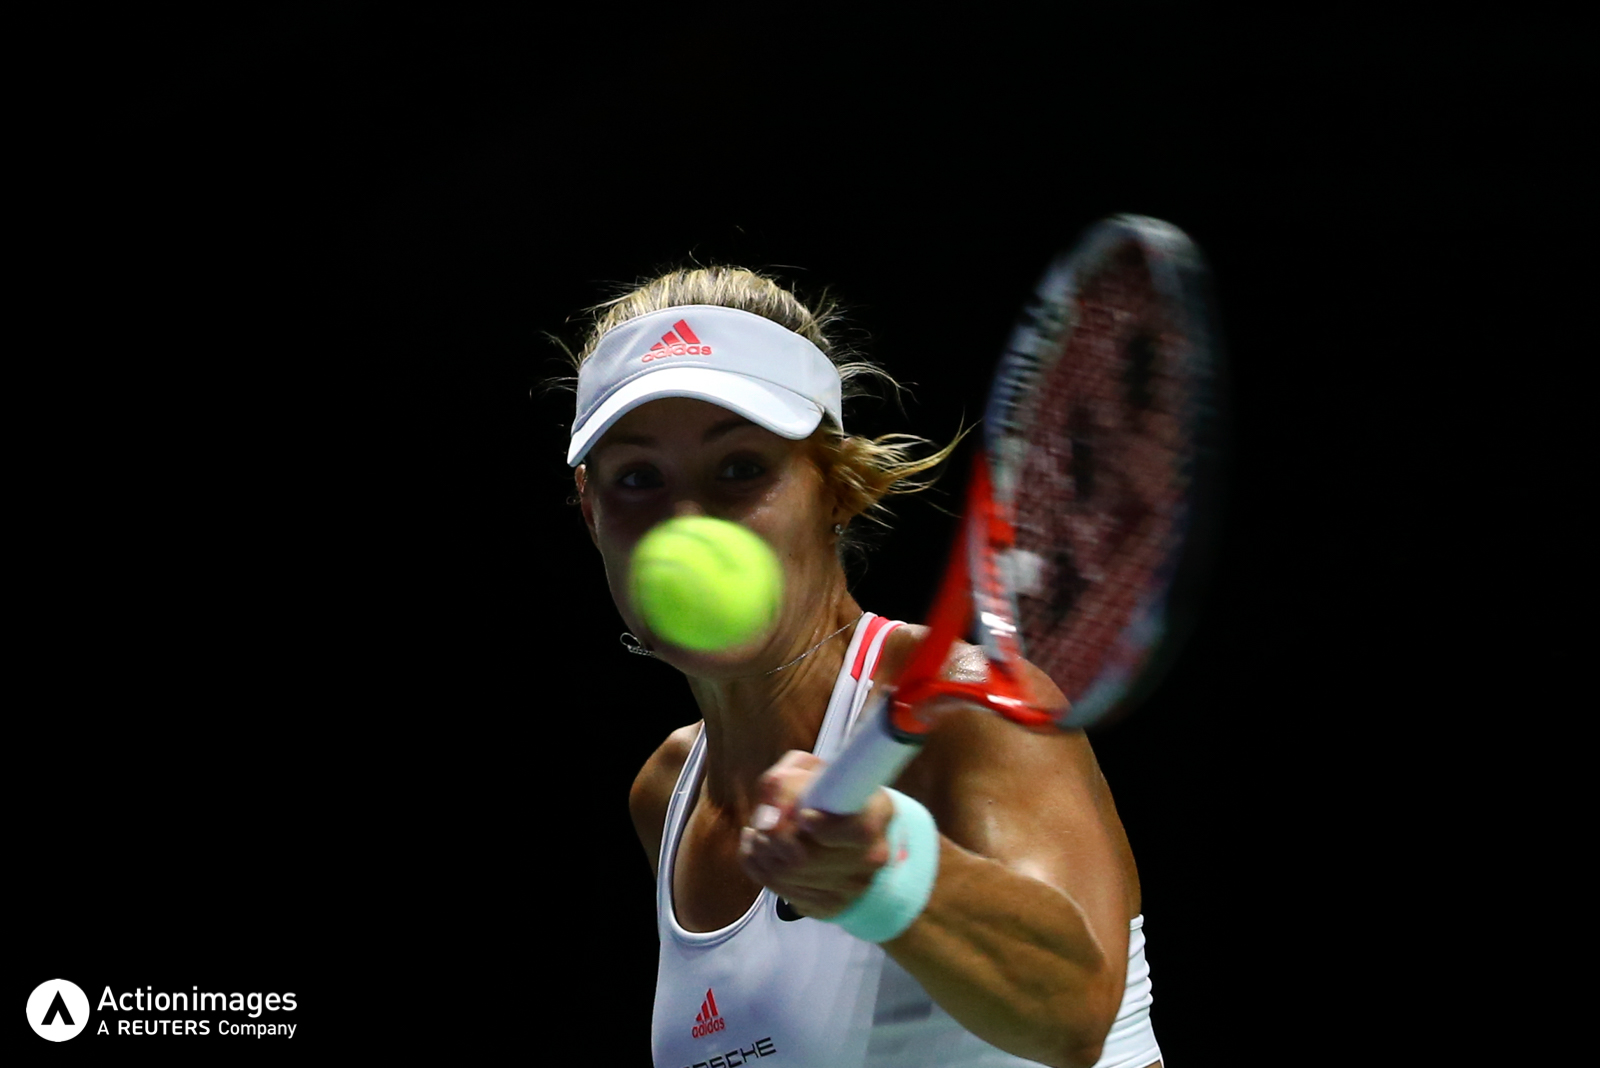 Tennis - BNP Paribas WTA Finals - Singapore Indoor Stadium - 29/10/16 Germany's Angelique Kerber in action during her semi final match Mandatory Credit: Action Images / Yong Teck Lim Livepic